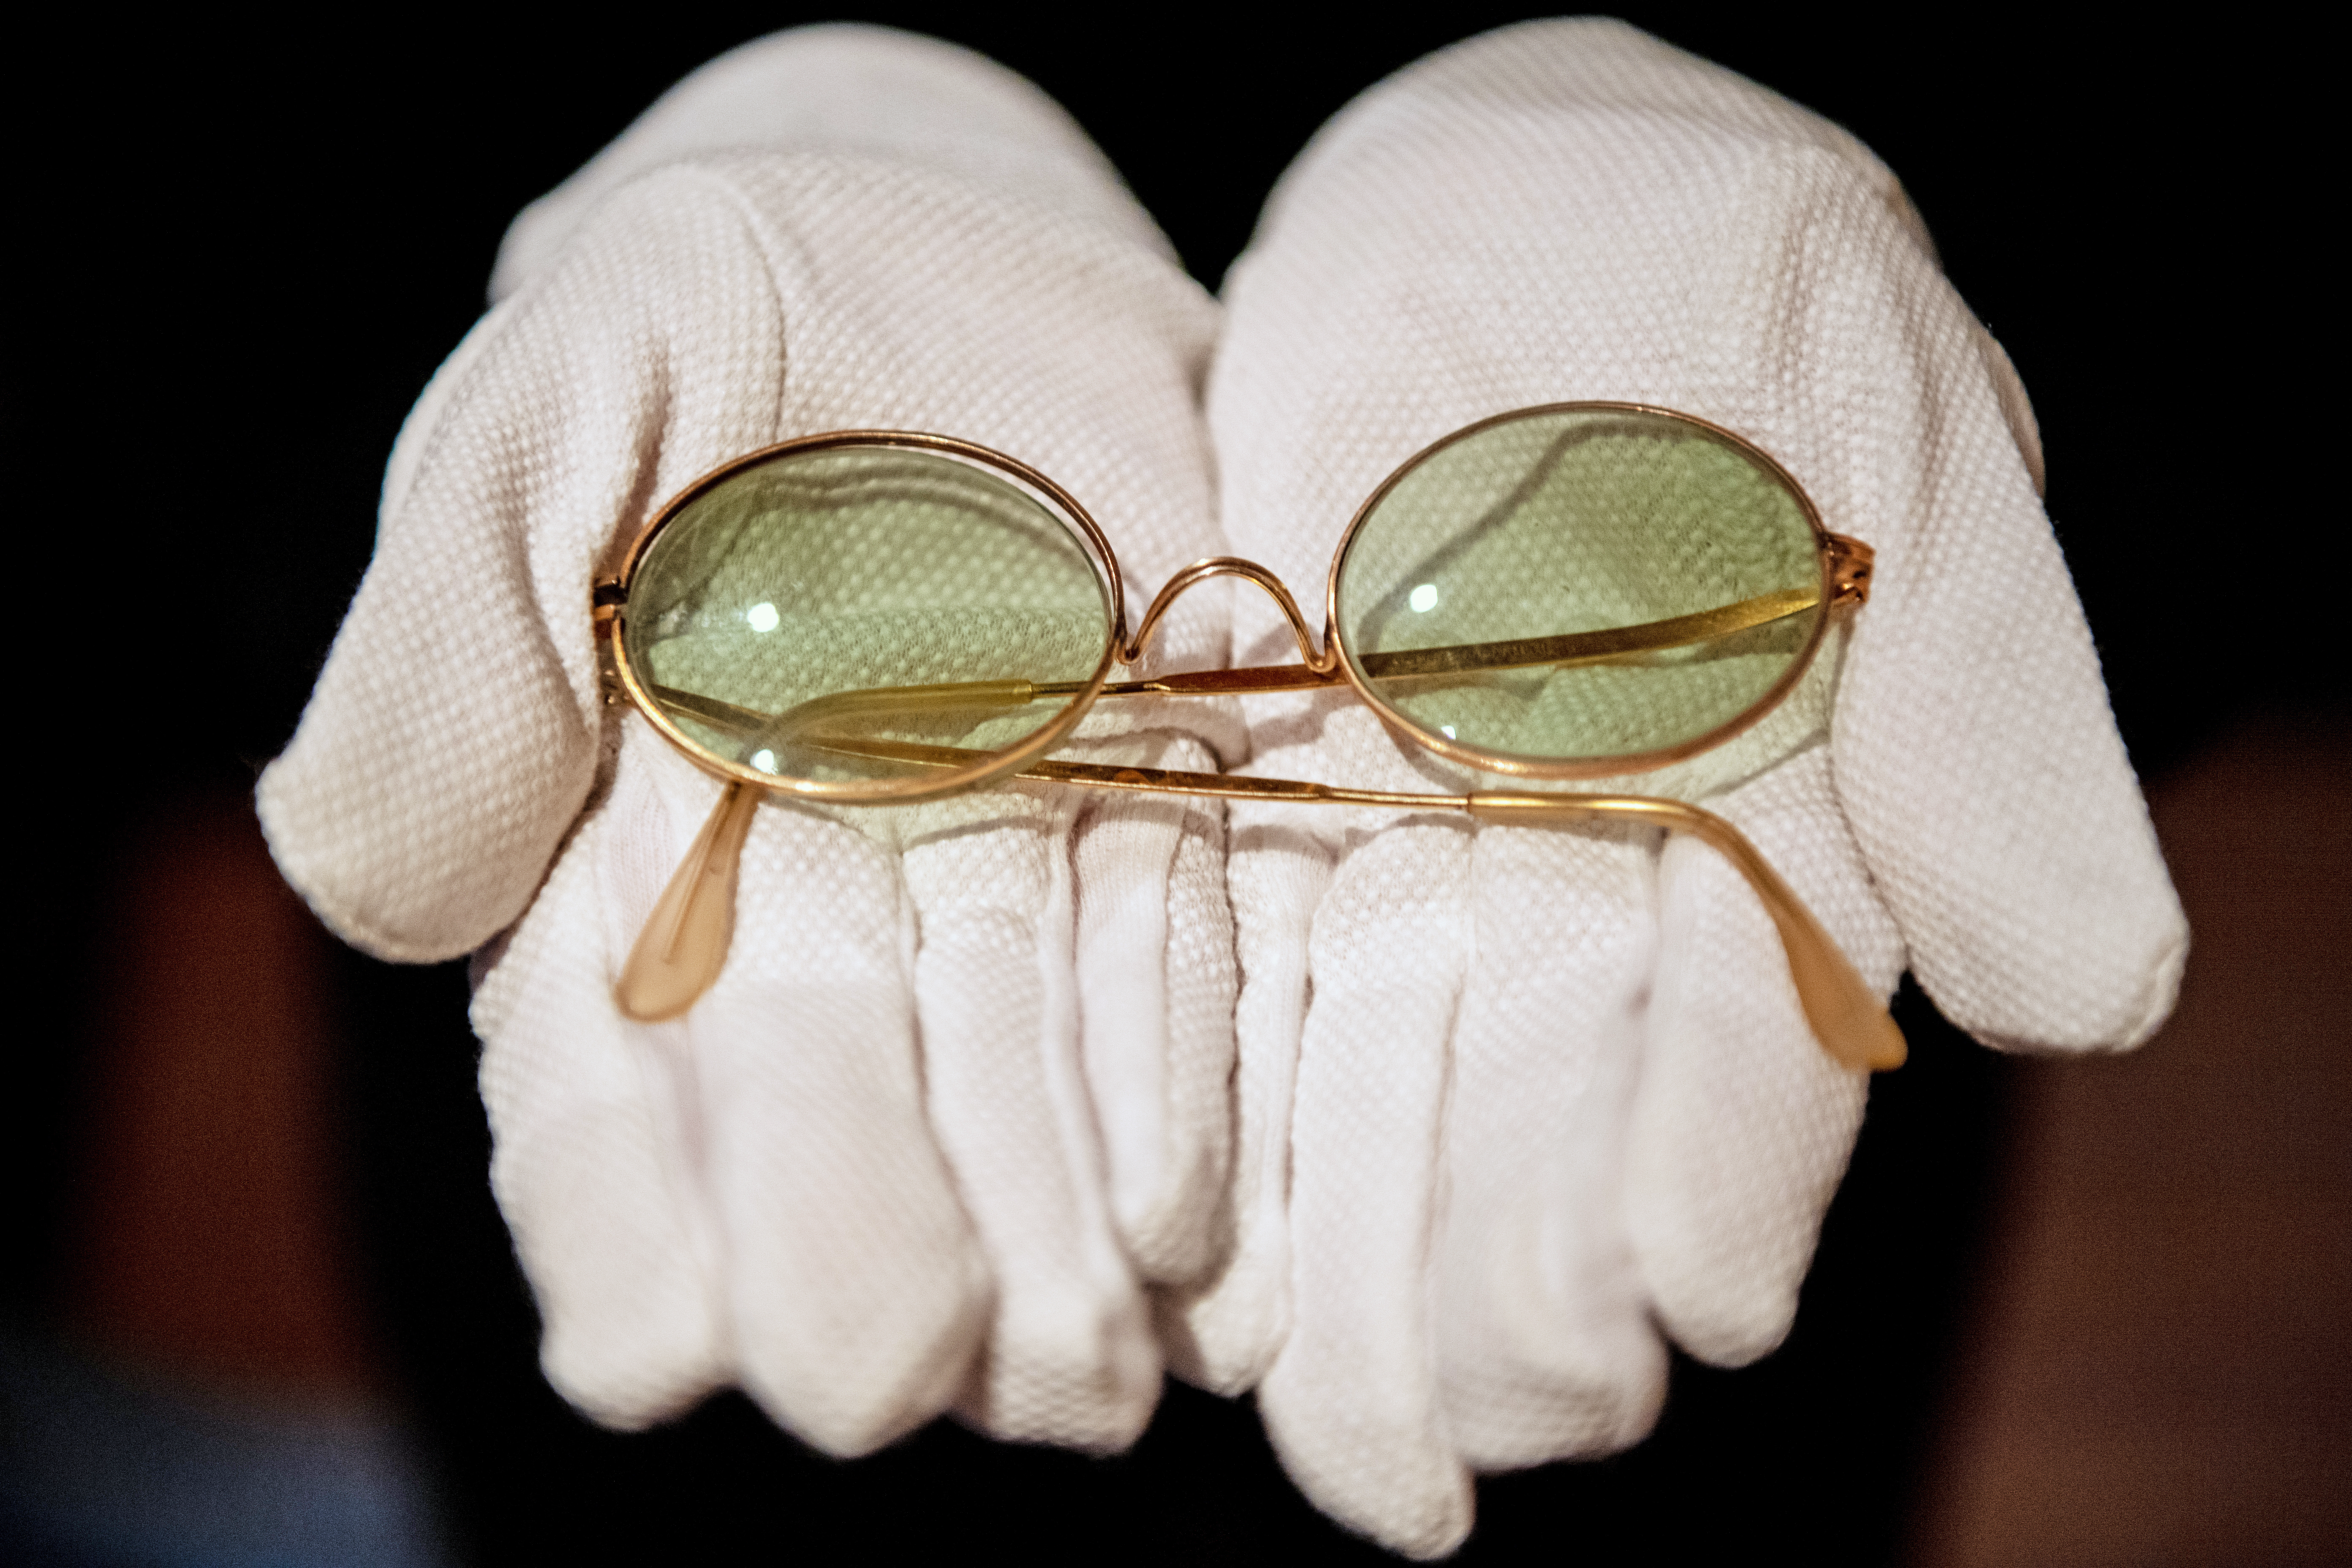 John Lennon's round sunglasses which are estimated to sell for £8,000 when they go up for auction.